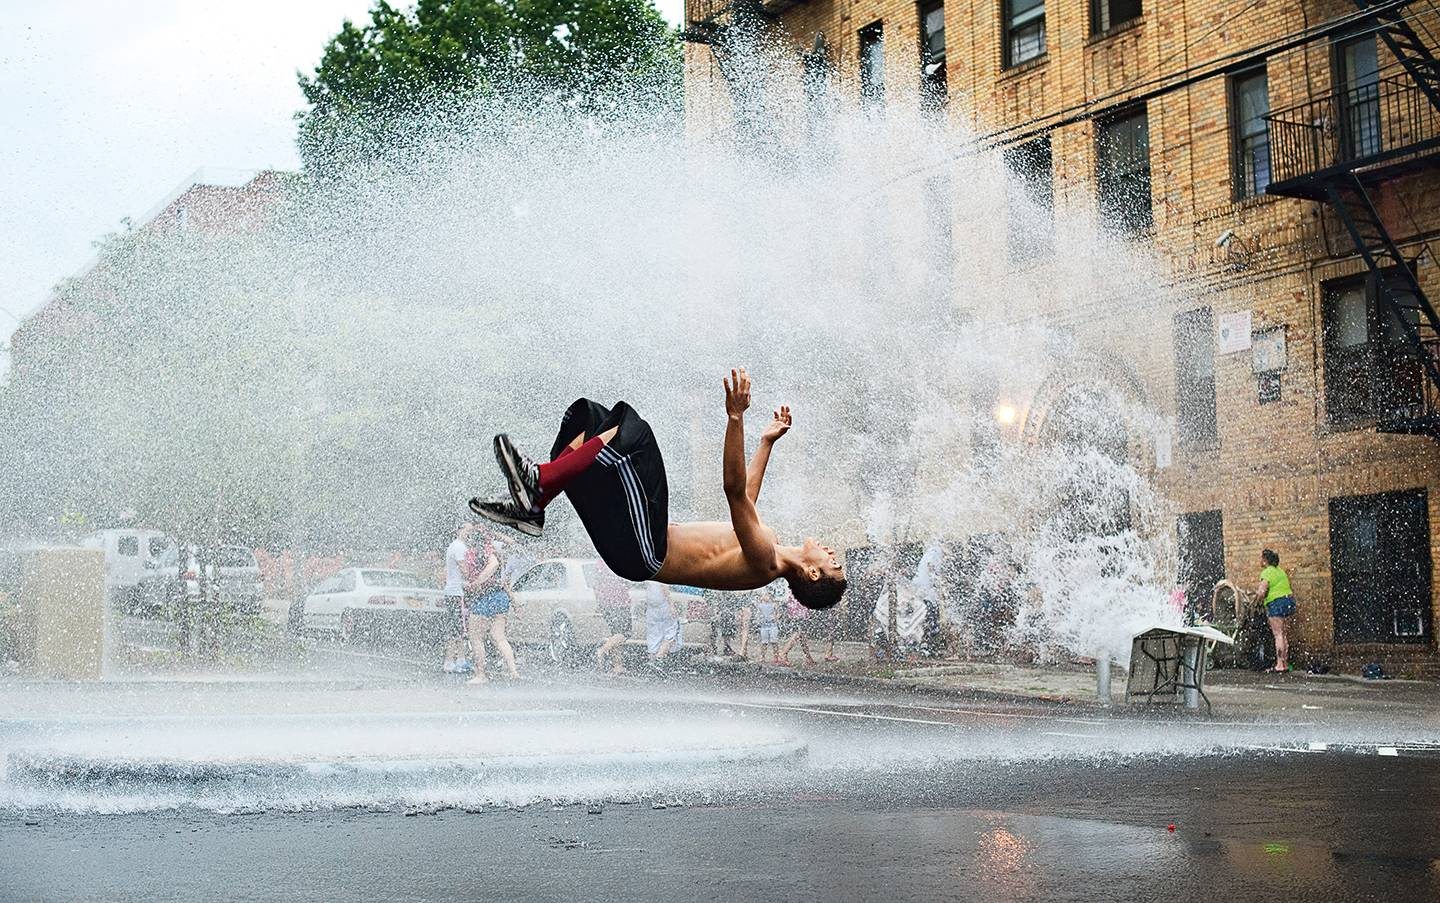 A man does a backflip in the spray of an open fire hydrant